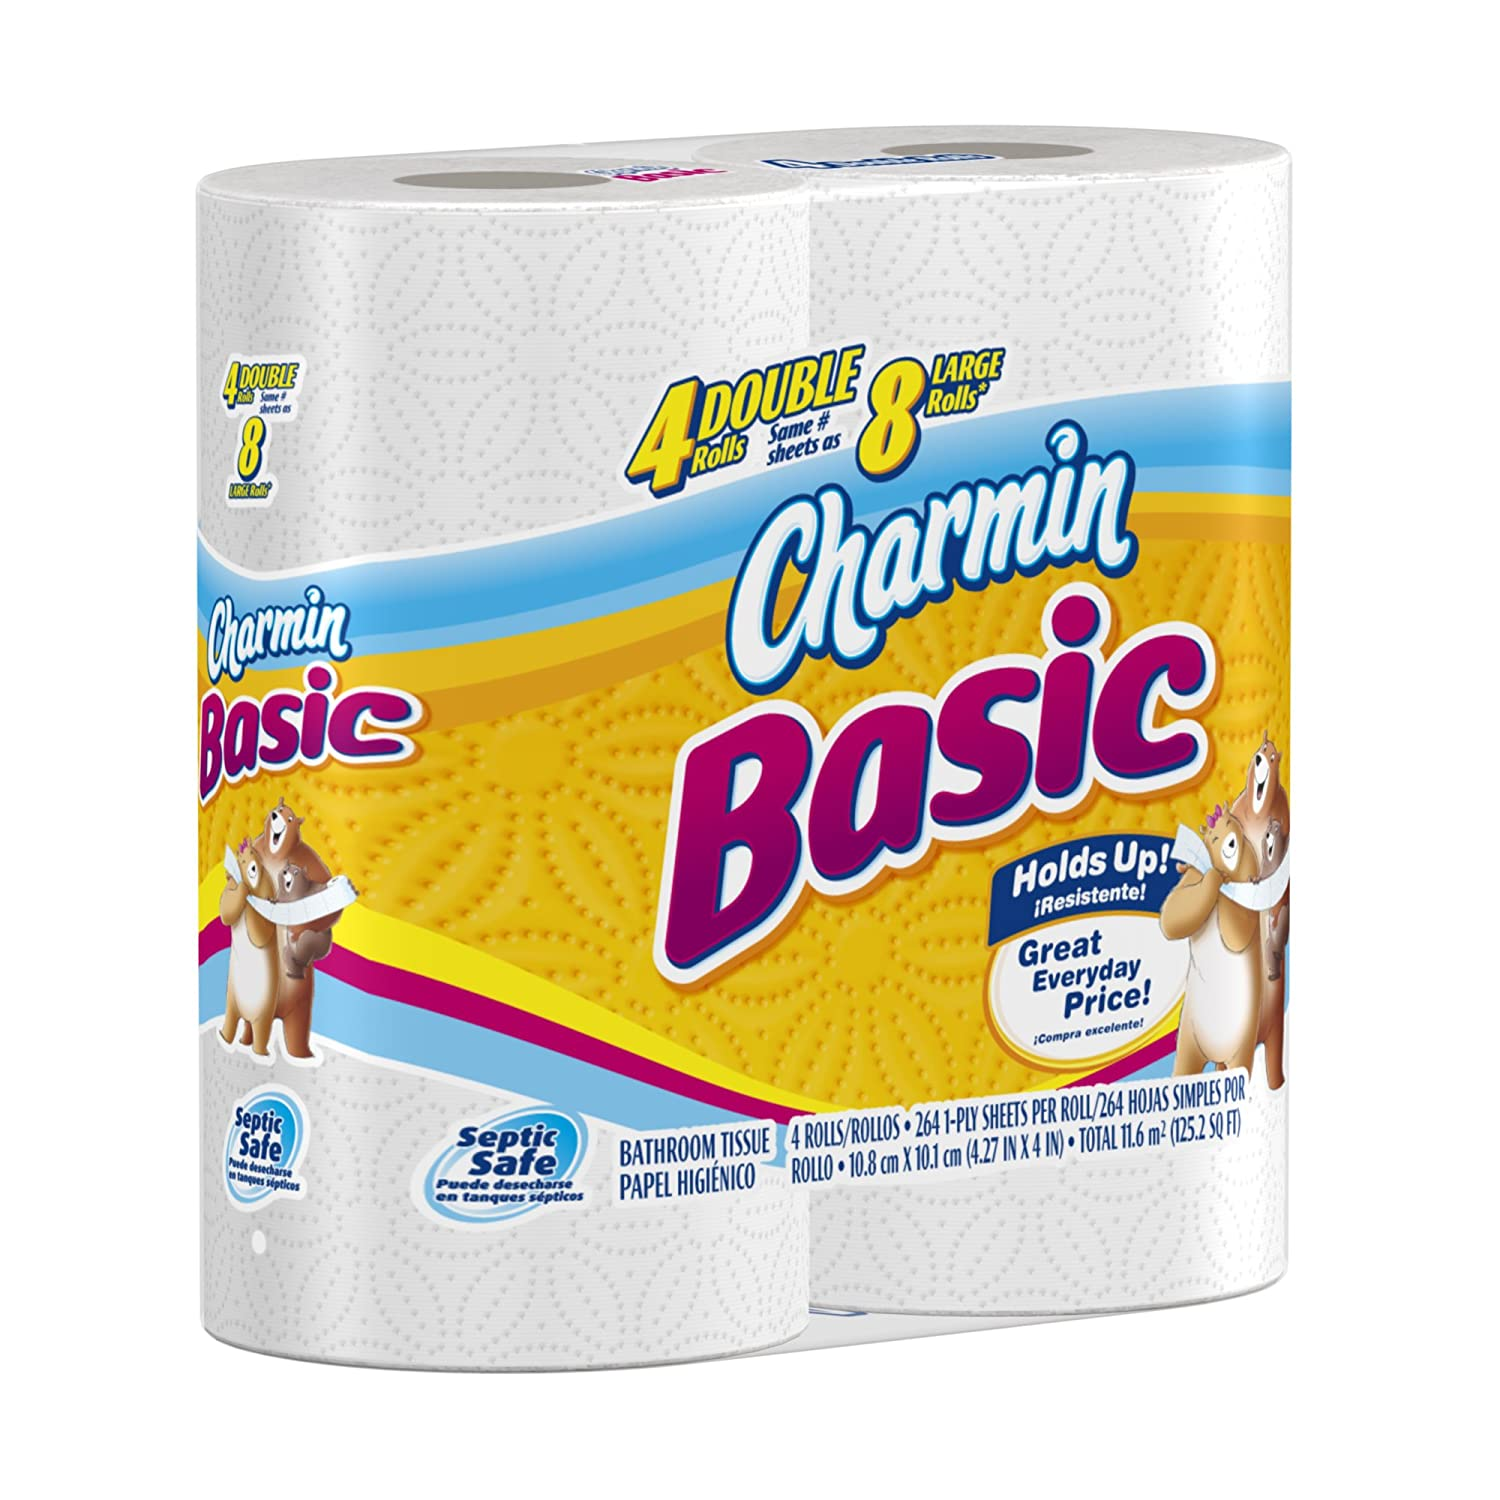 Amazon.com: Charmin Basic Toilet Paper, 4 Double Rolls (Pack of 10 ...